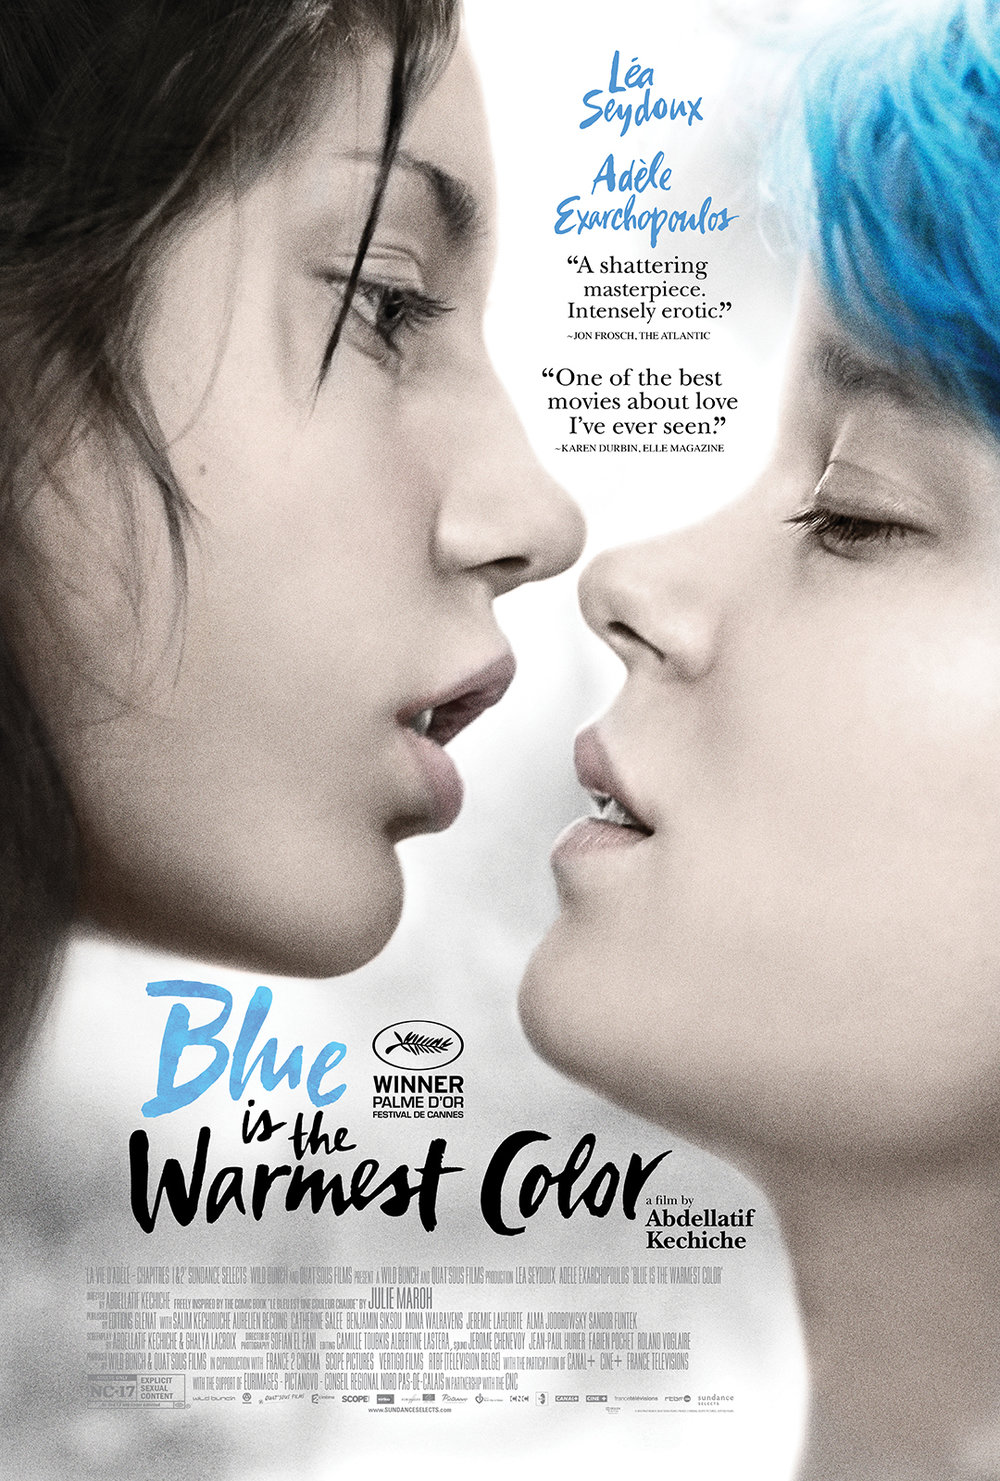 Blue is the Warmest Color (2013) - Directed by: Abellatif KechicheStarring: Adele Exarchopoulos, Lea Seydoux, Salim KechioucheRated: NC-17 for Explicit Sexual ContentRunning Time: 3 hTMM Score: 5 stars out of 5STRENGTHS: Writing, Directing, Story, ActingWEAKNESSES: -